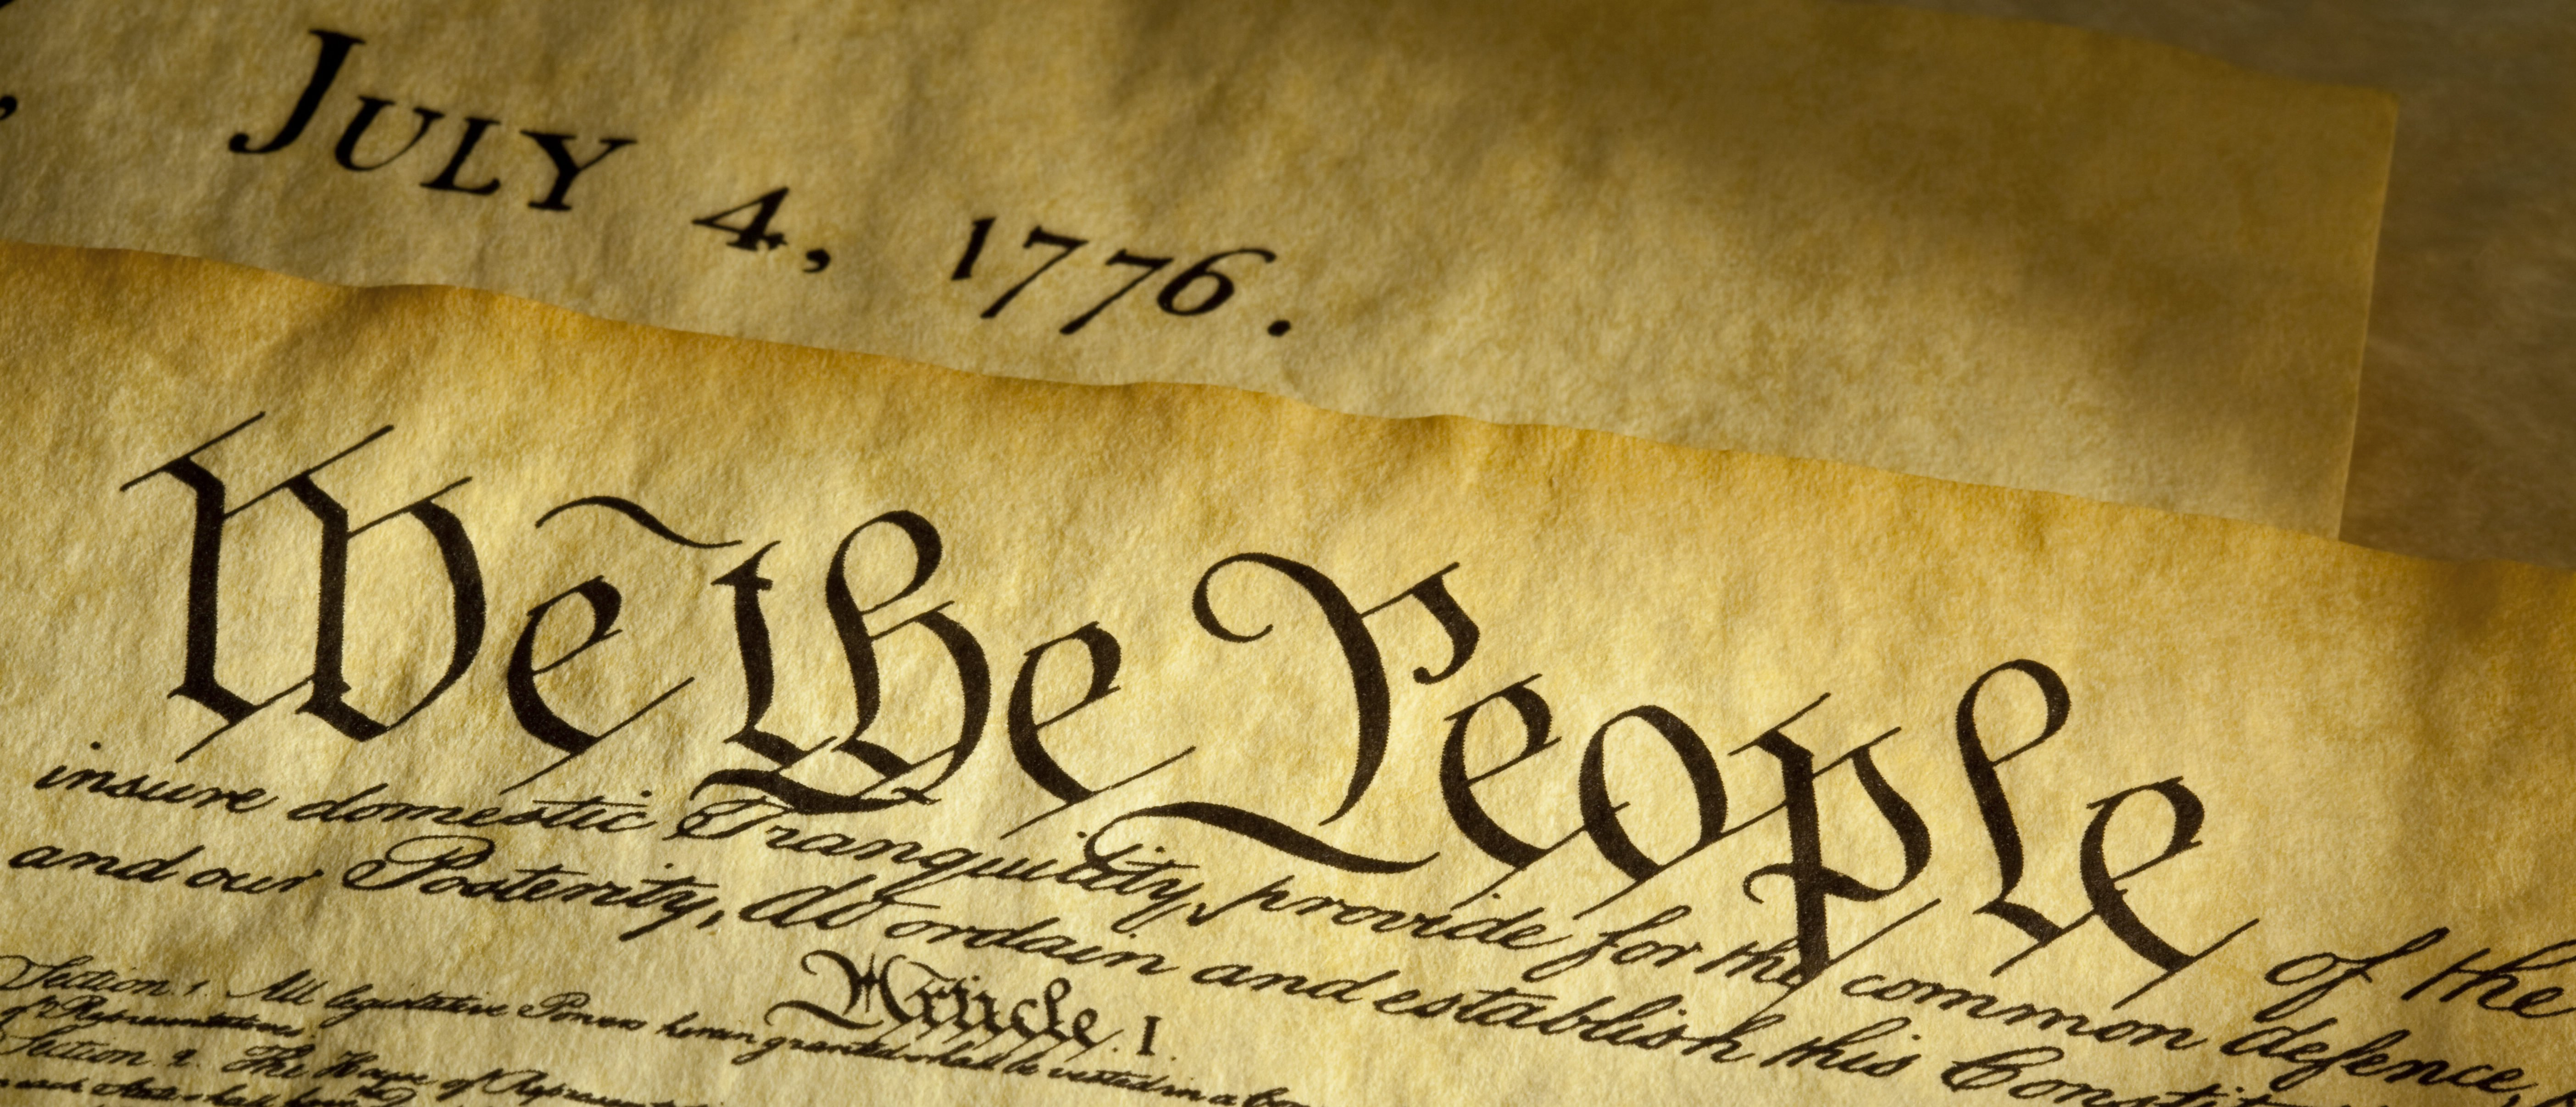 The American Constitution. Shutterstock.